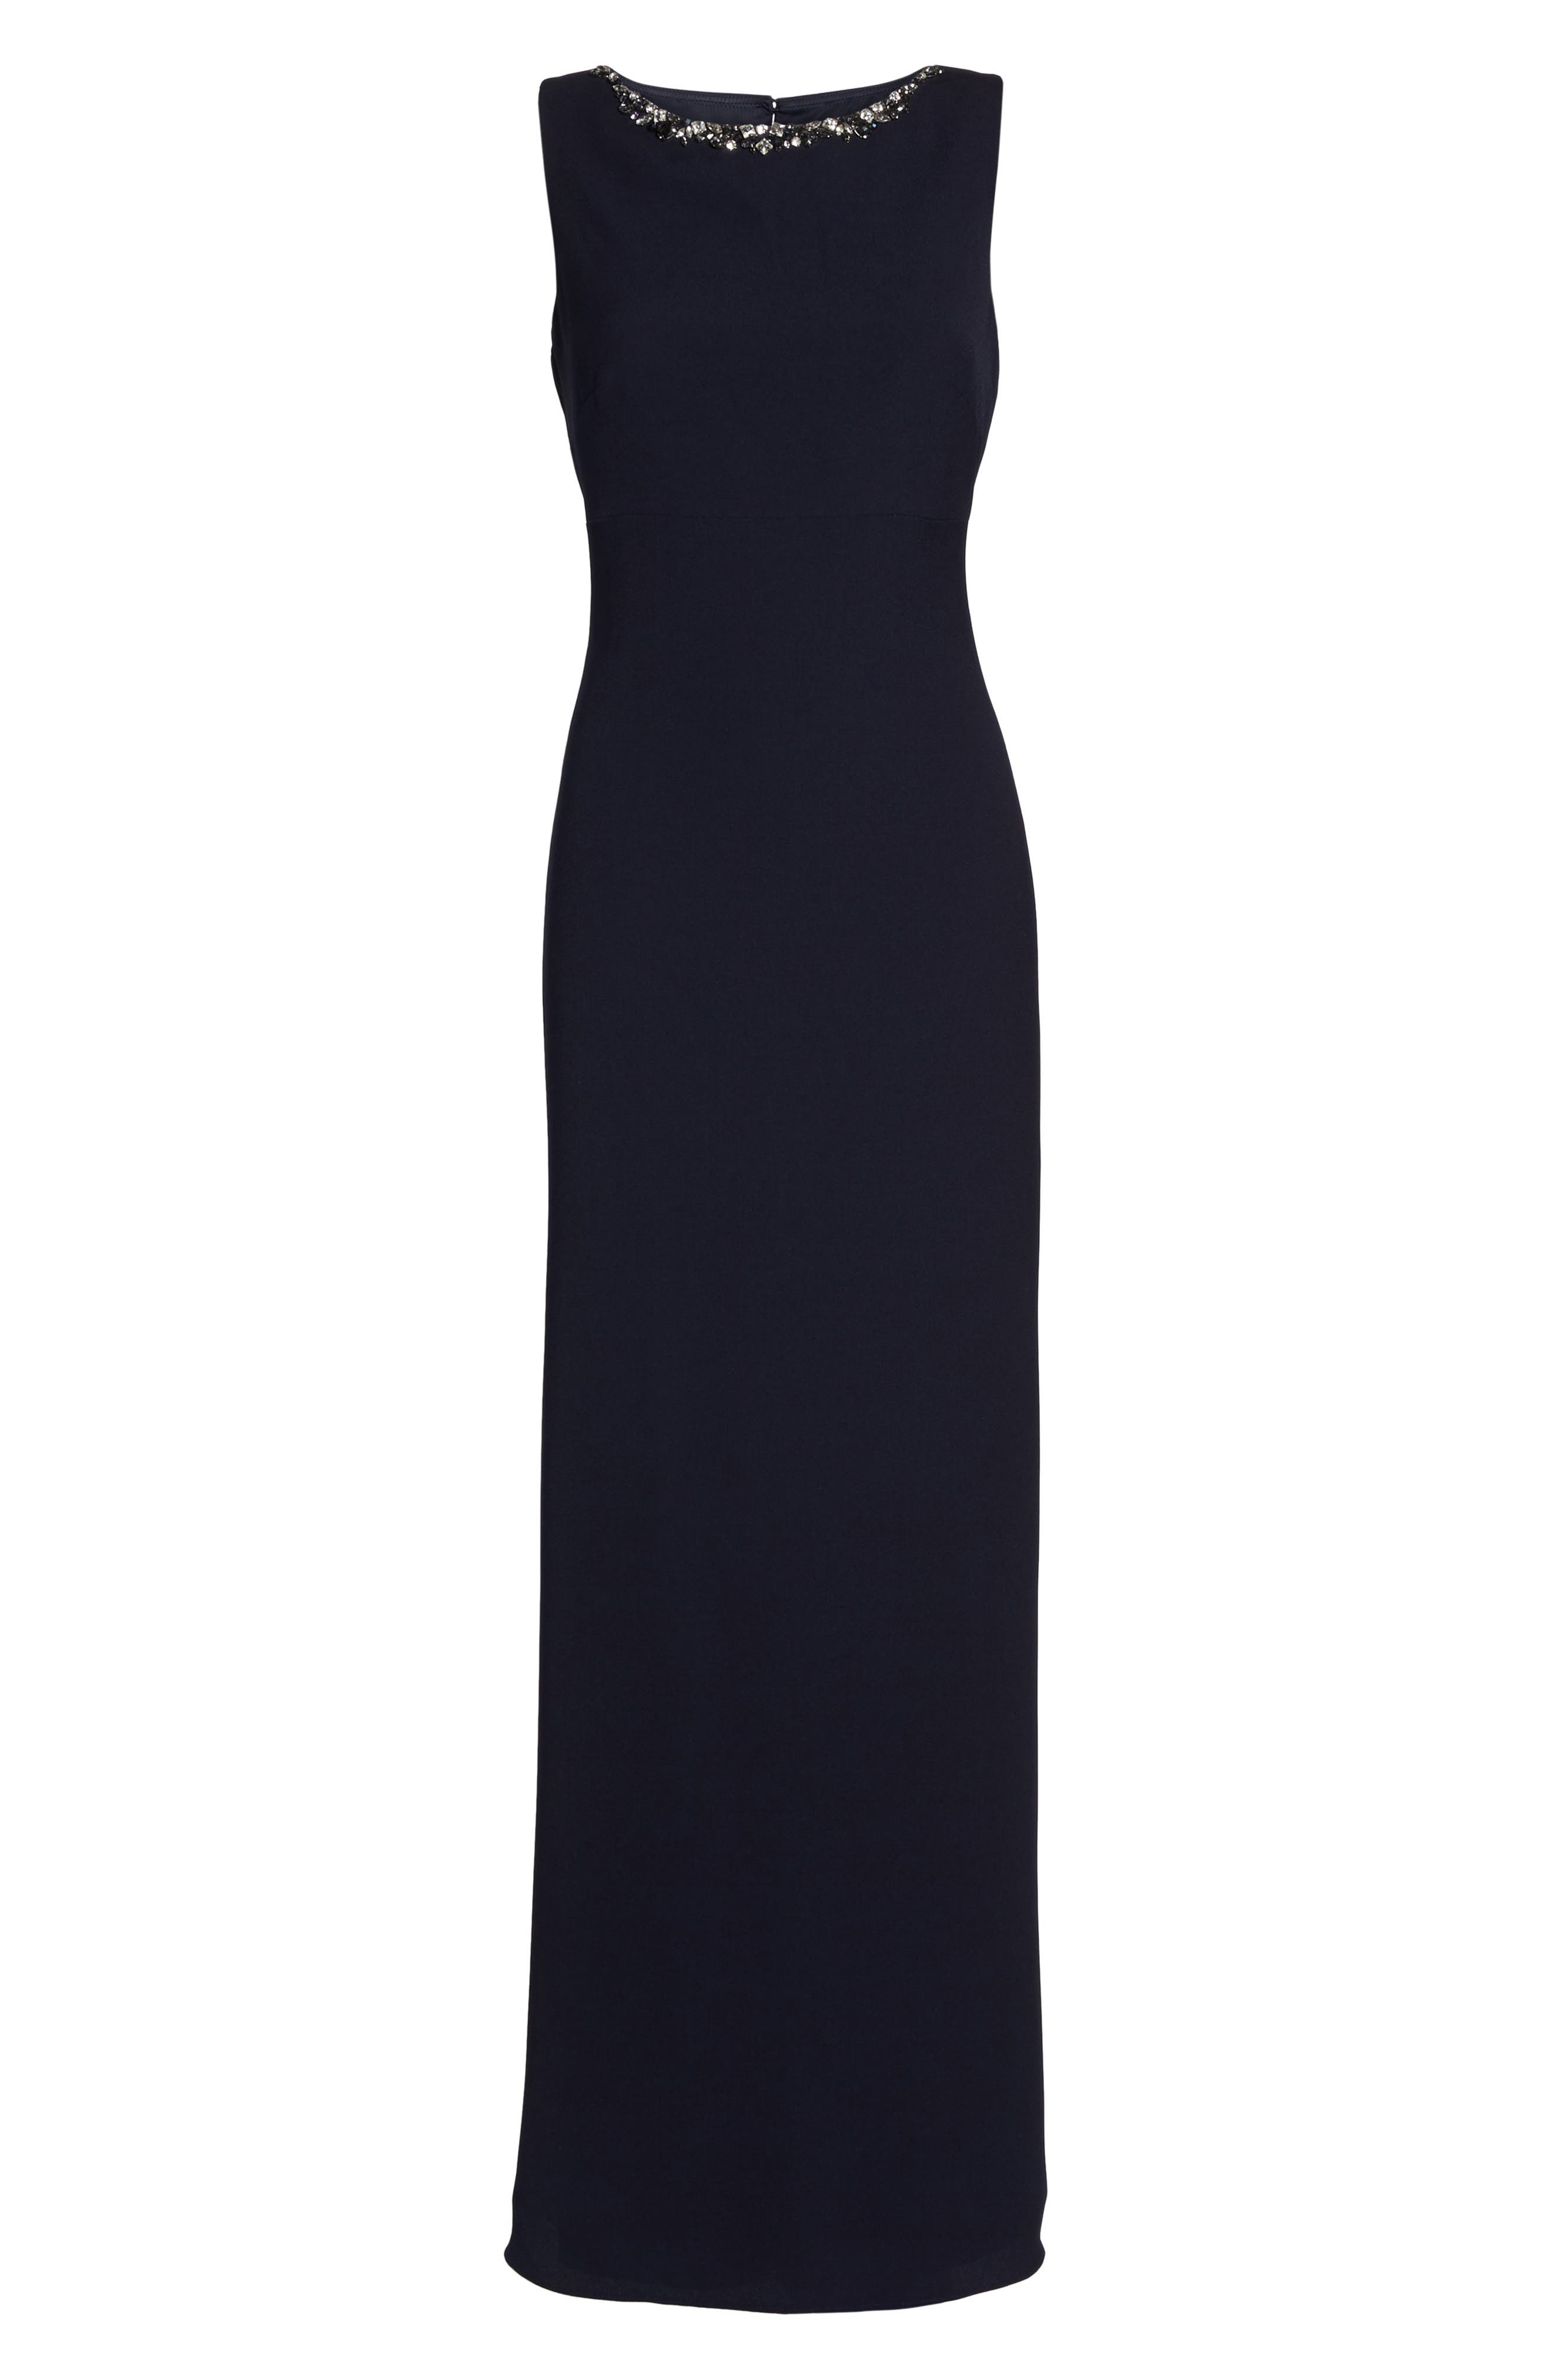 Embellished Ruffle Back Crepe Gown,                             Alternate thumbnail 6, color,                             Navy